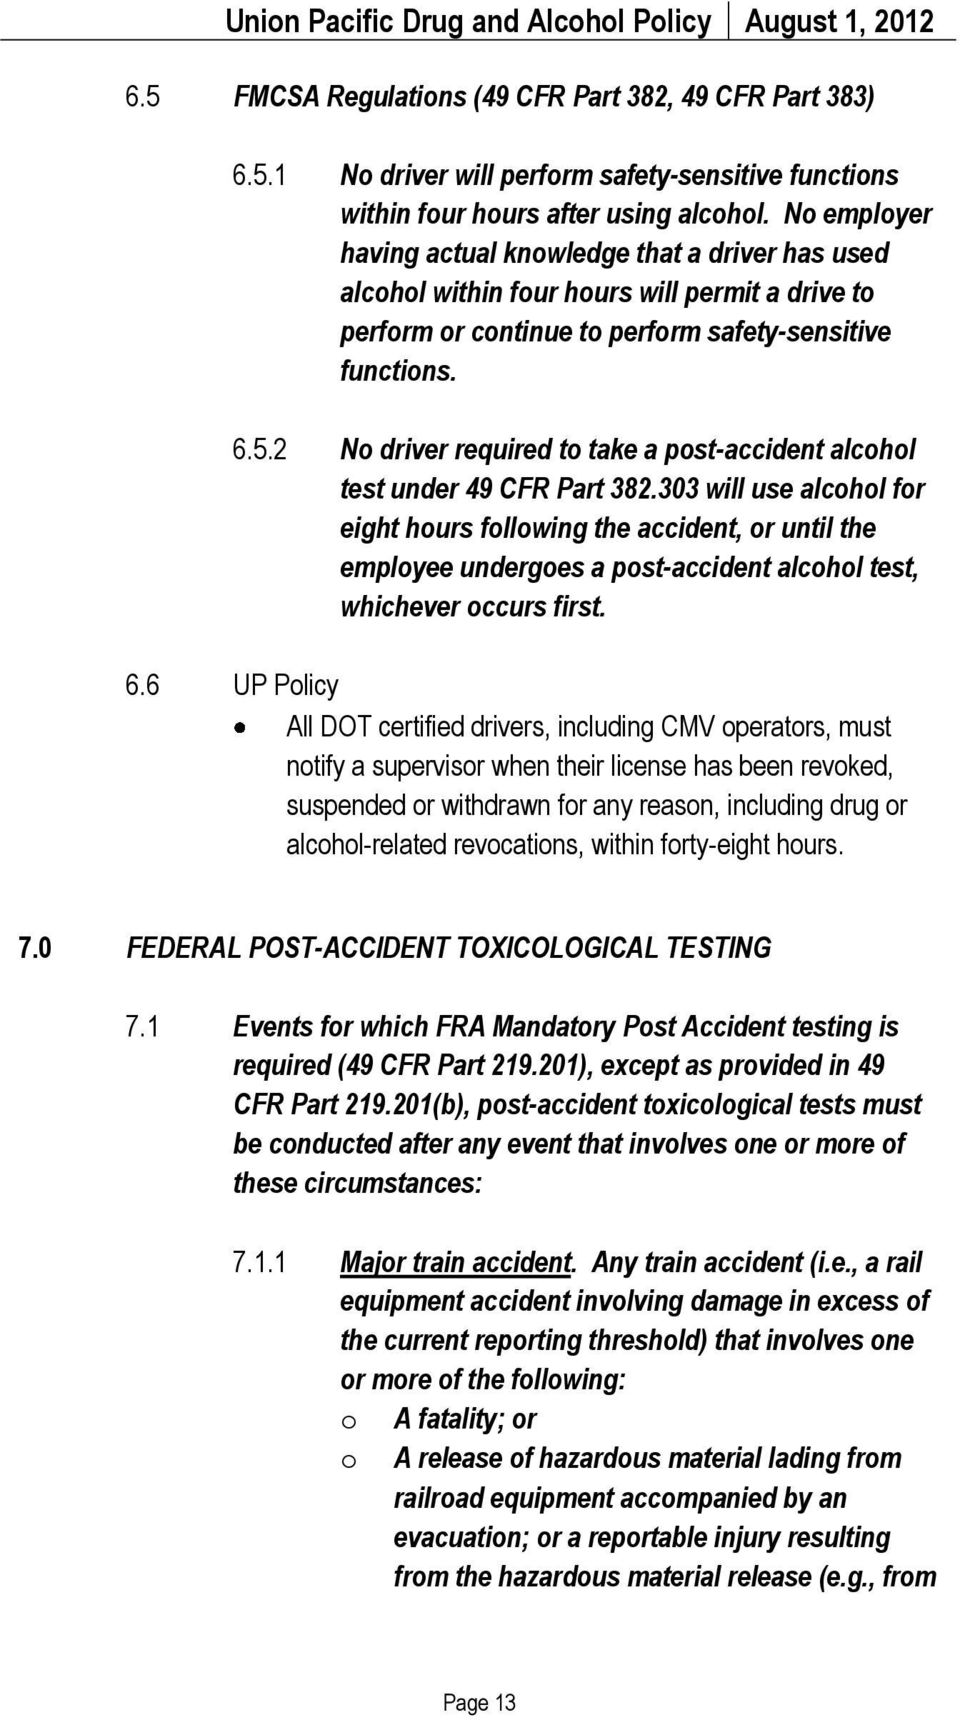 2 No driver required to take a post-accident alcohol test under 49 CFR Part 382.